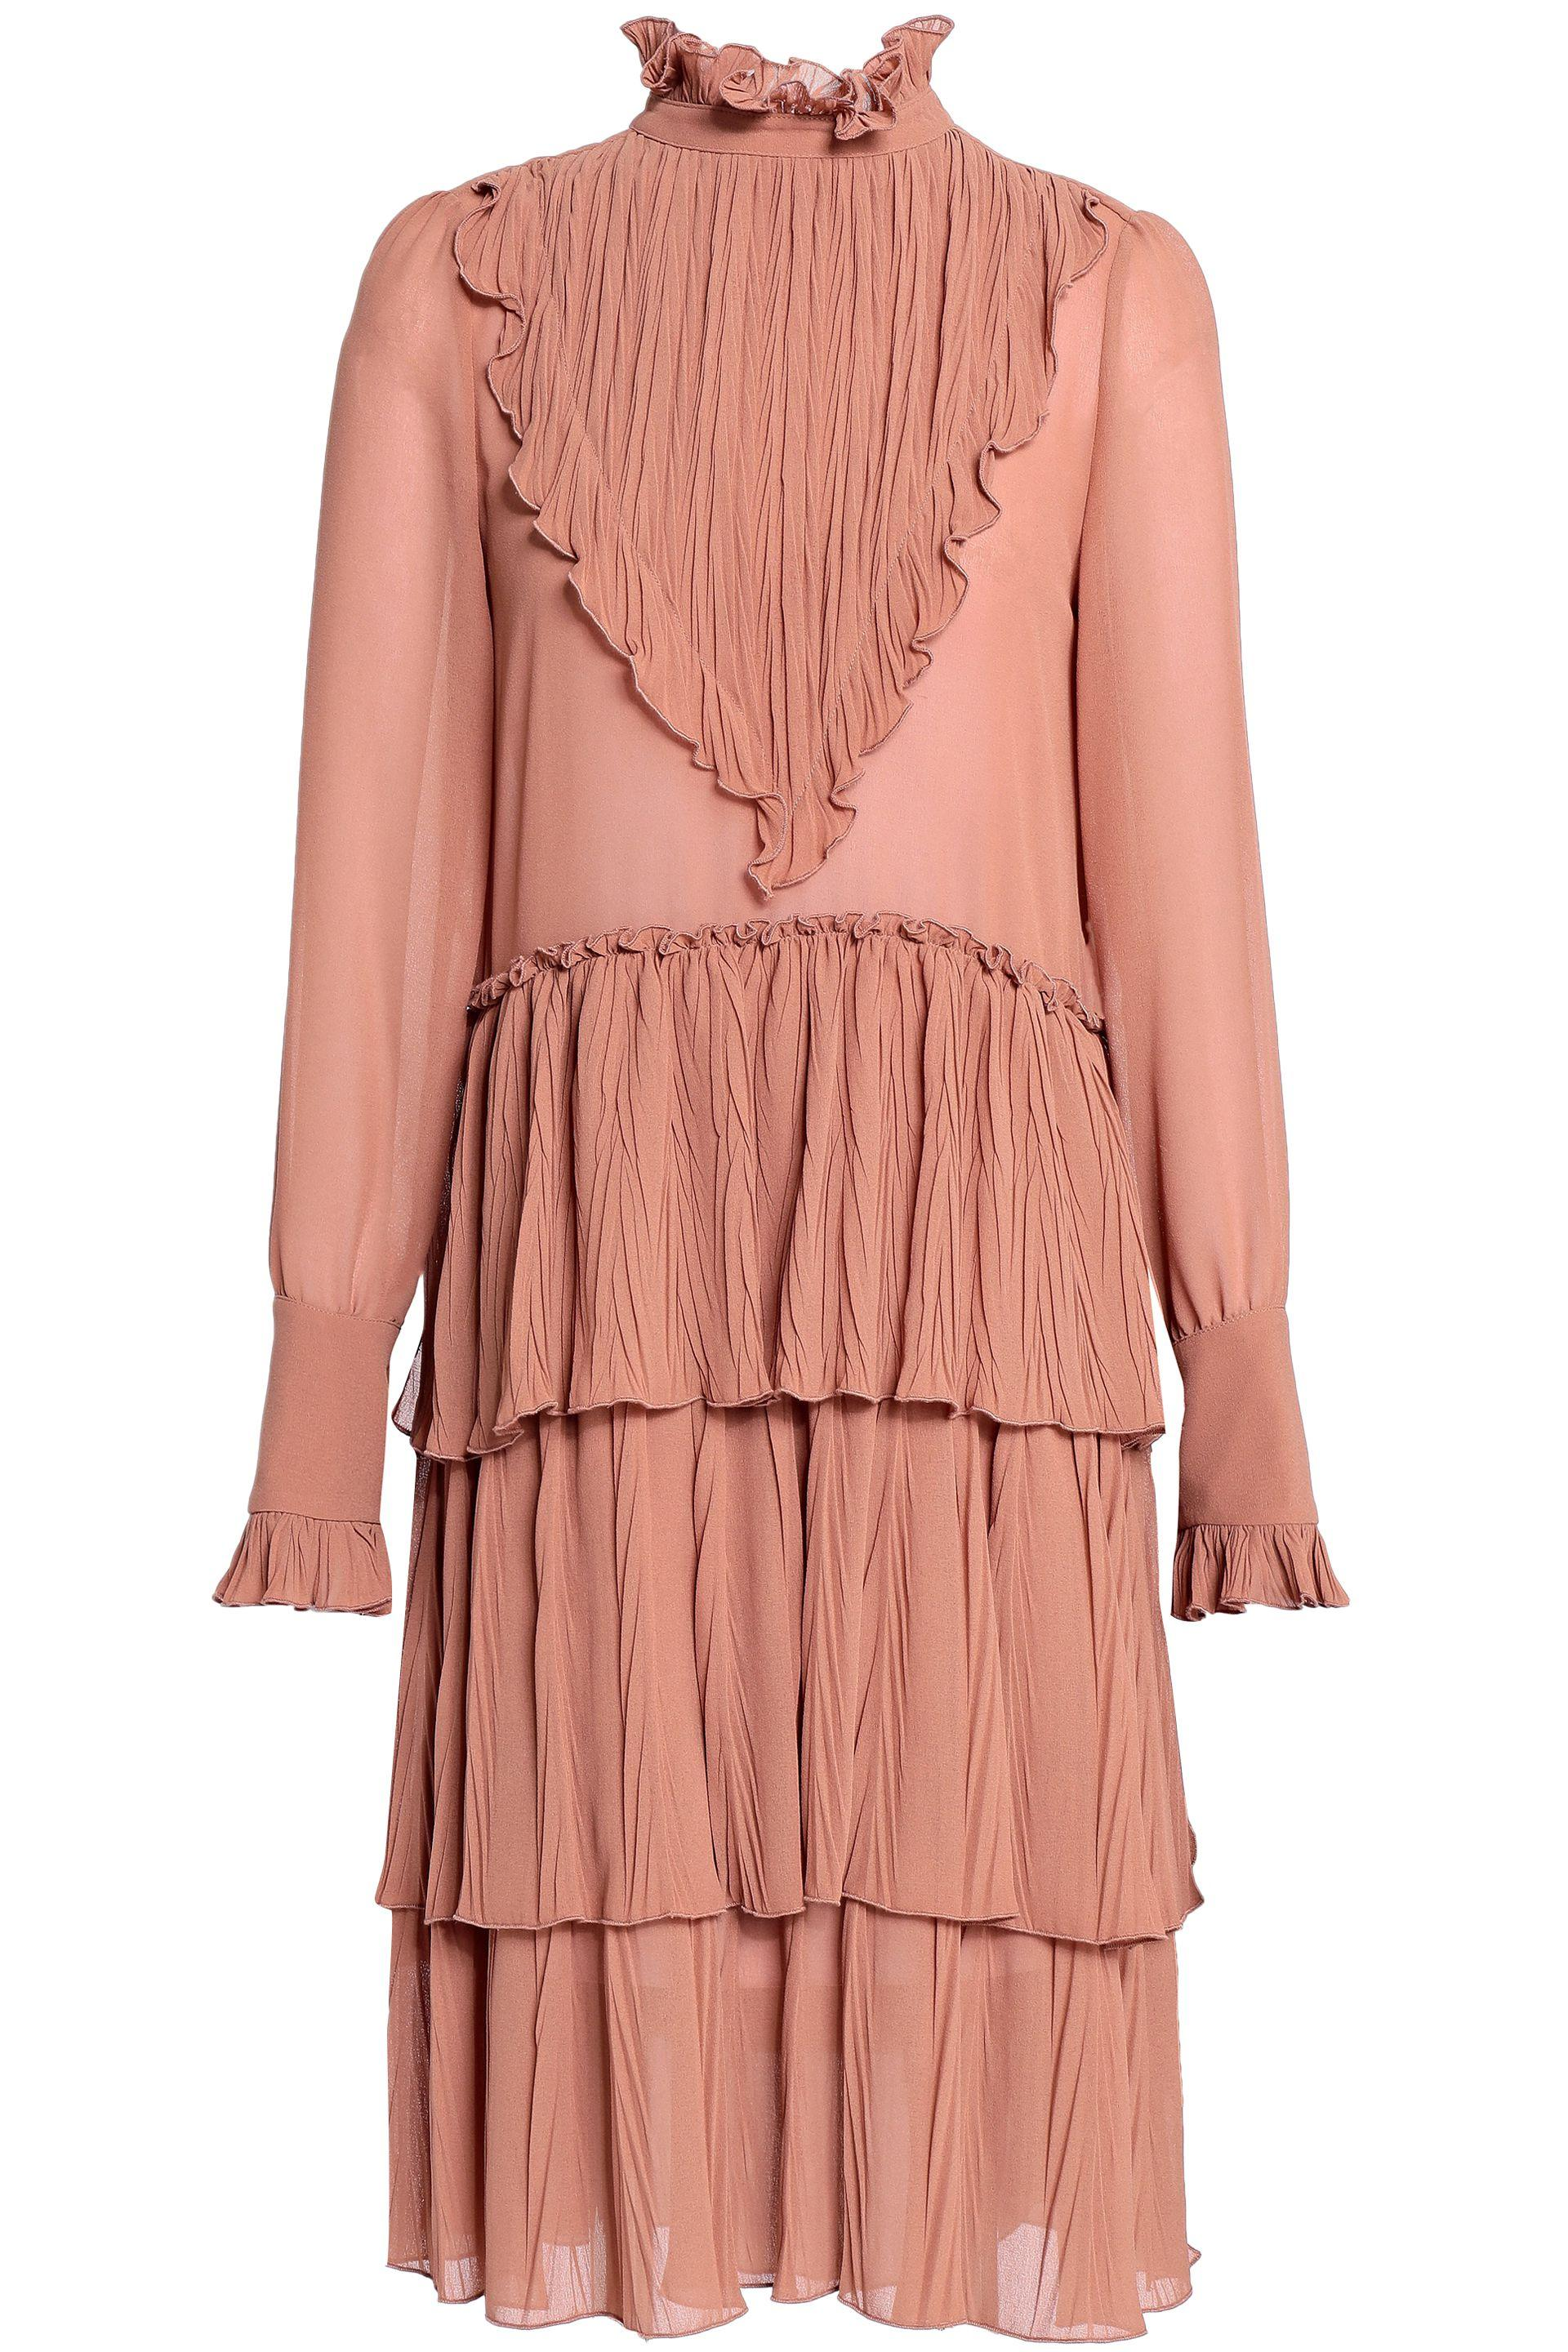 Lyst Plissé Chloé Woman See By Tiered Paneled eEHDIW29Yb